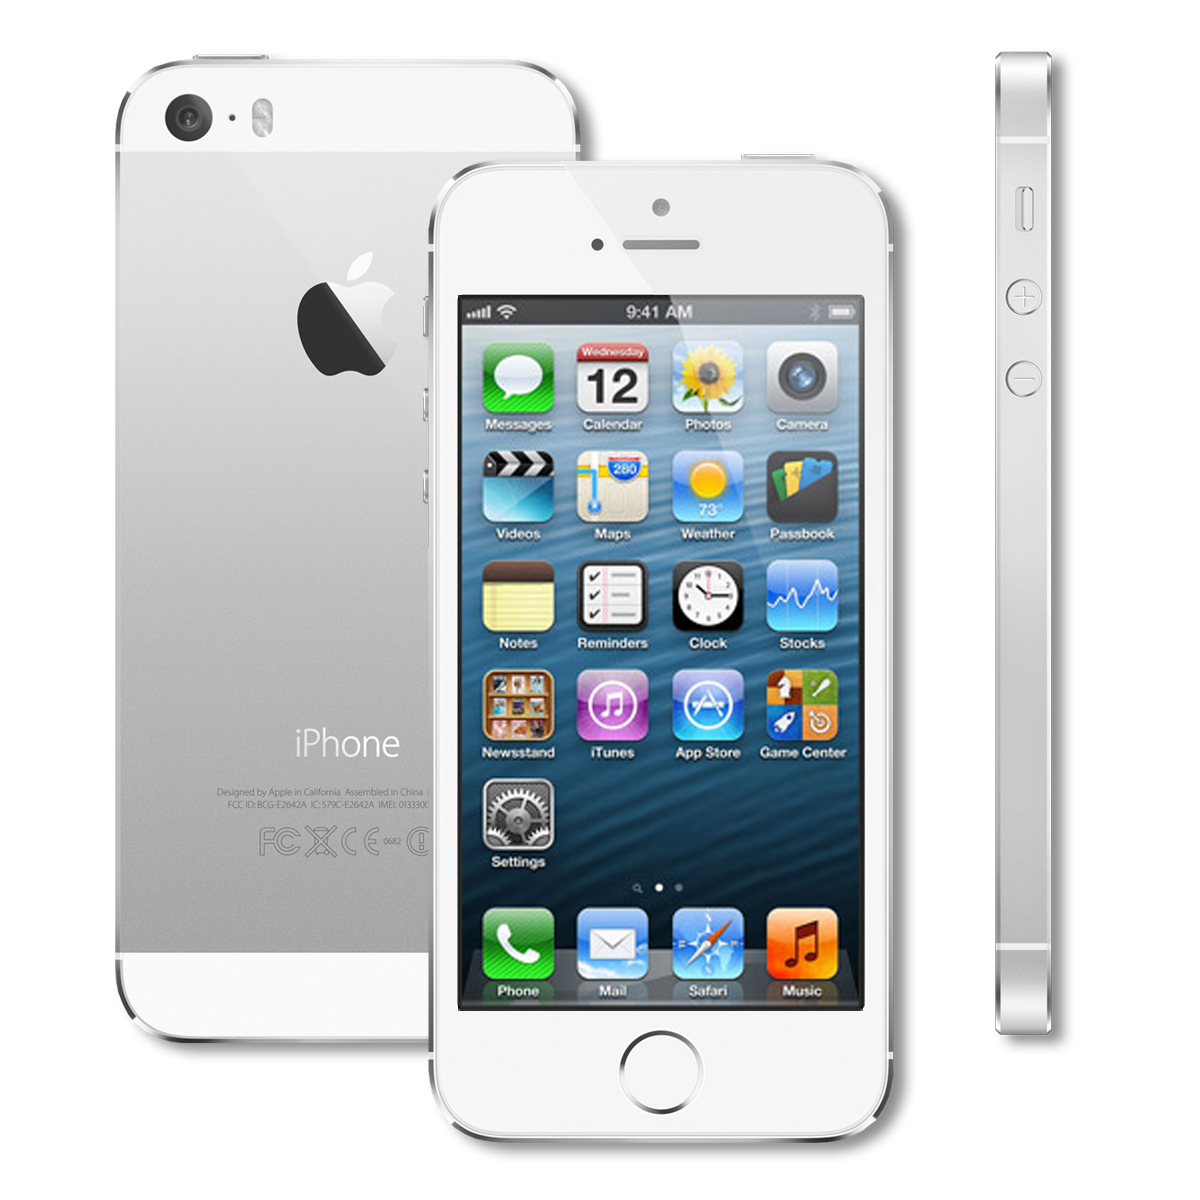 apple iphone 5s 16gb certified refurbished factory unlocked smartphone a1453 ebay. Black Bedroom Furniture Sets. Home Design Ideas